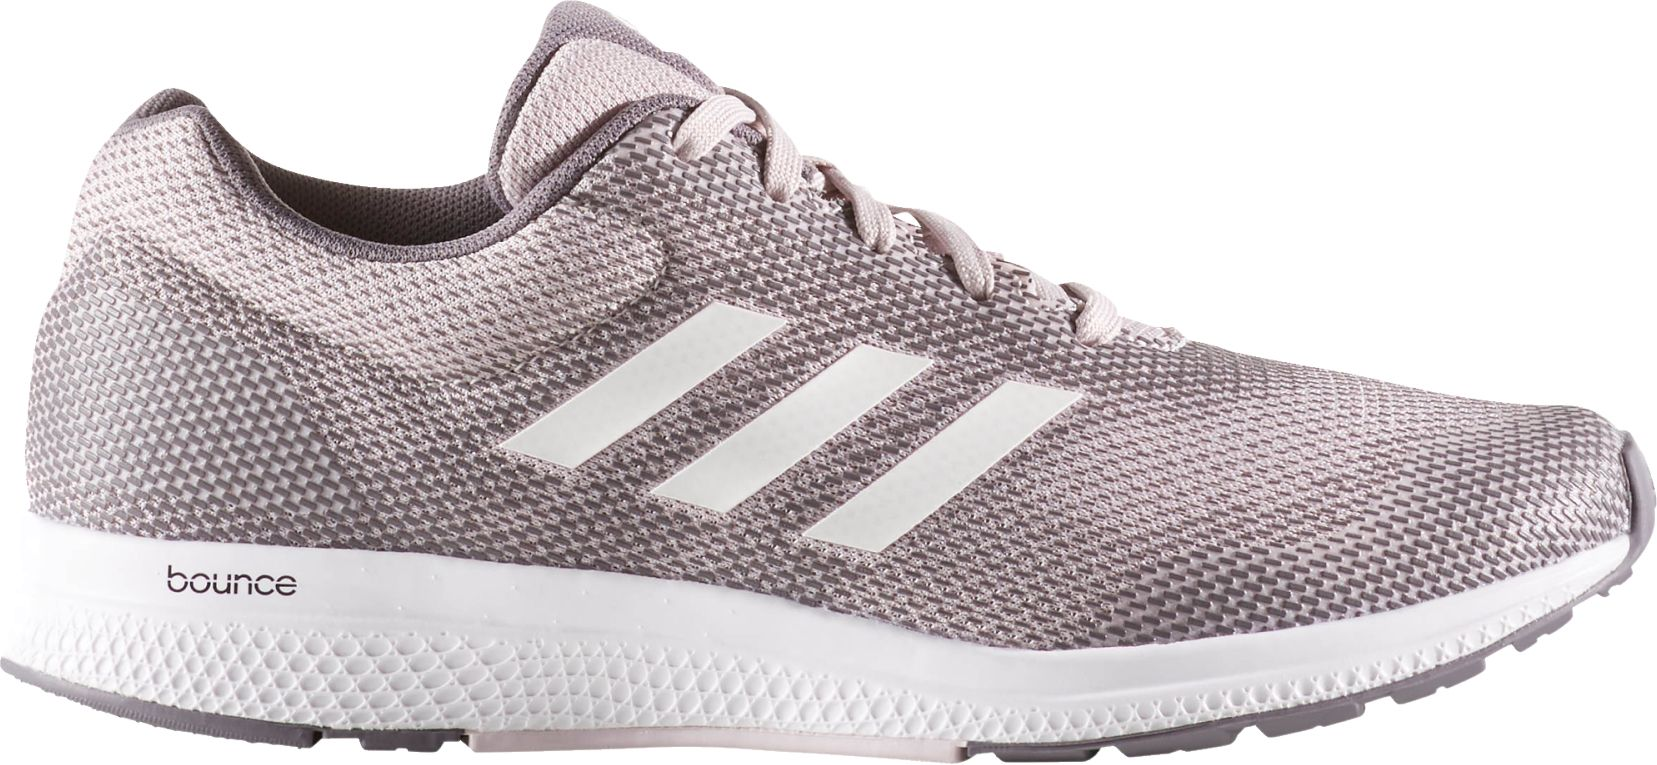 womens adidas bounce running shoes